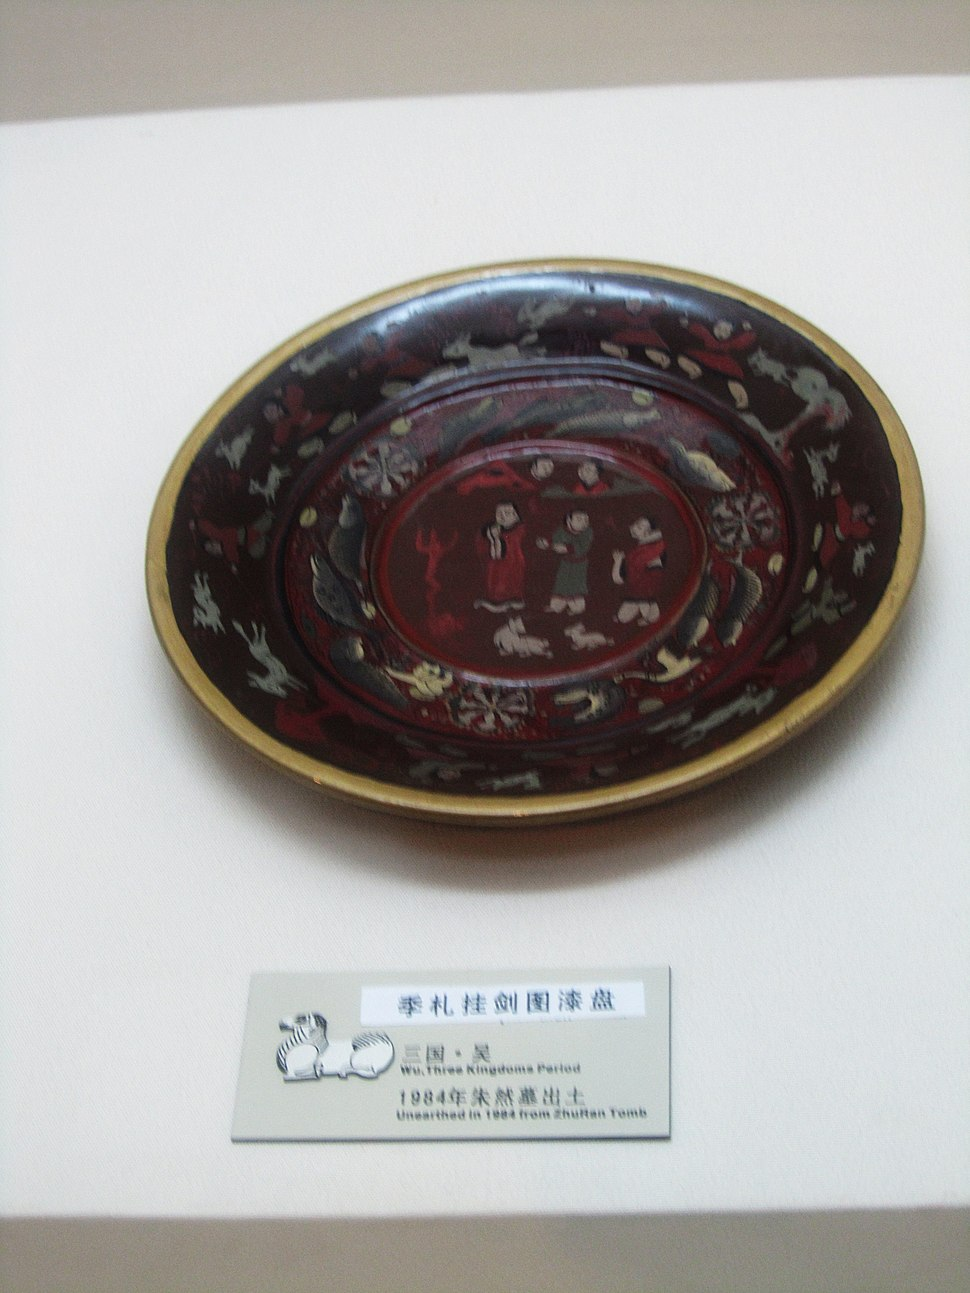 Painted Iacquer dish unearthed from the tomb of Zhuran 01 2012-05